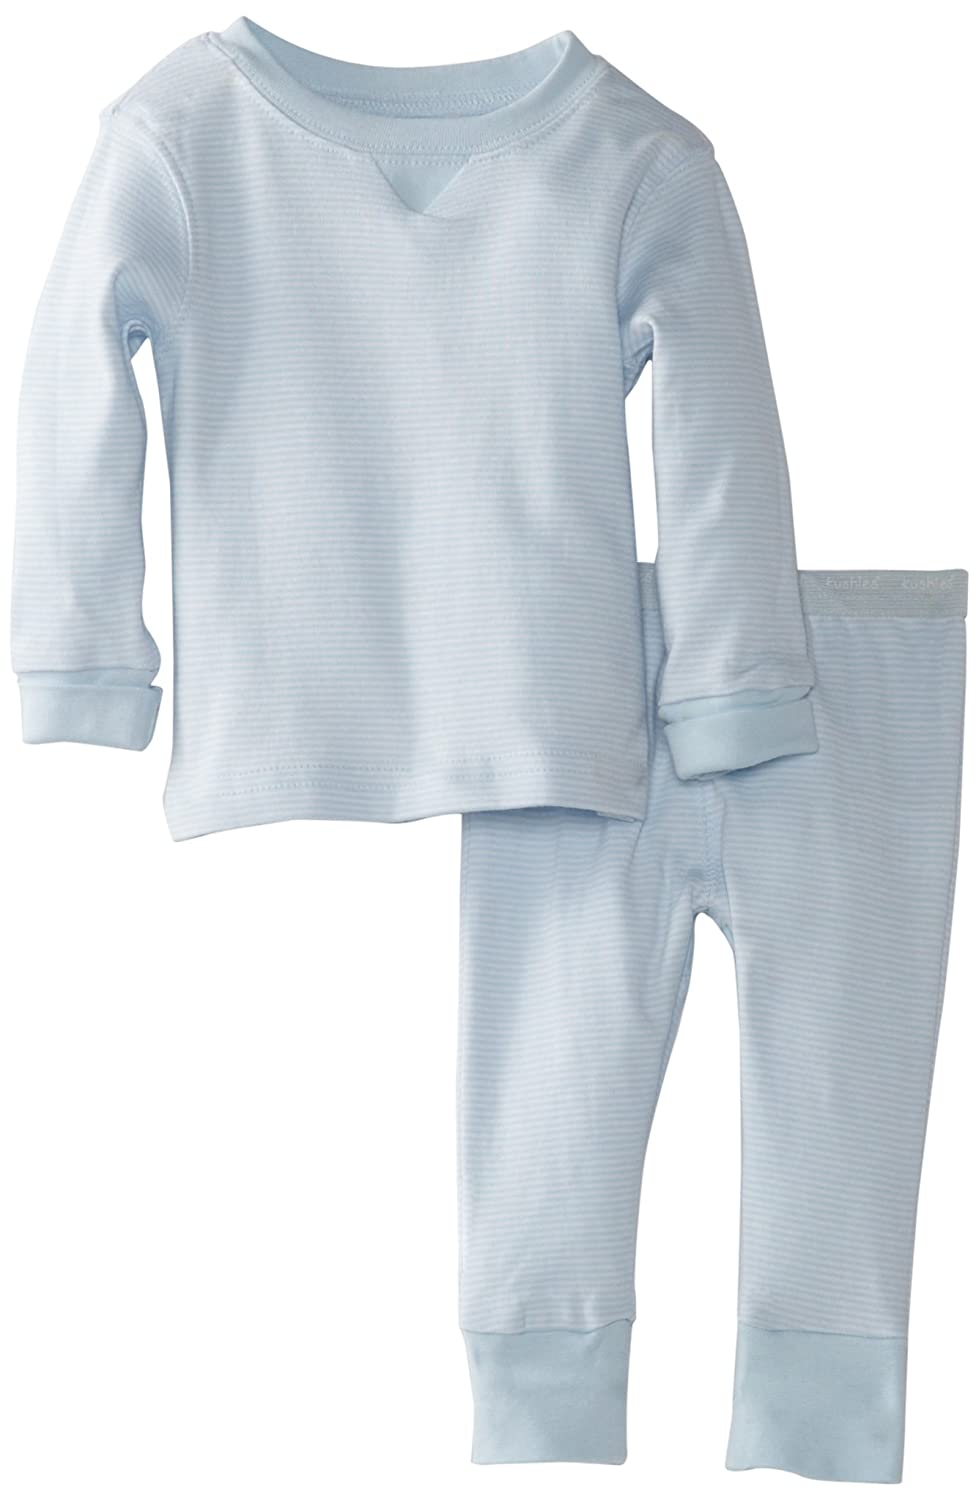 Kushies Baby Everyday Layette 2-Piece Set, Blue Stripe, 6 Months, 1 Pack A471-Blue Stripe-6 Months